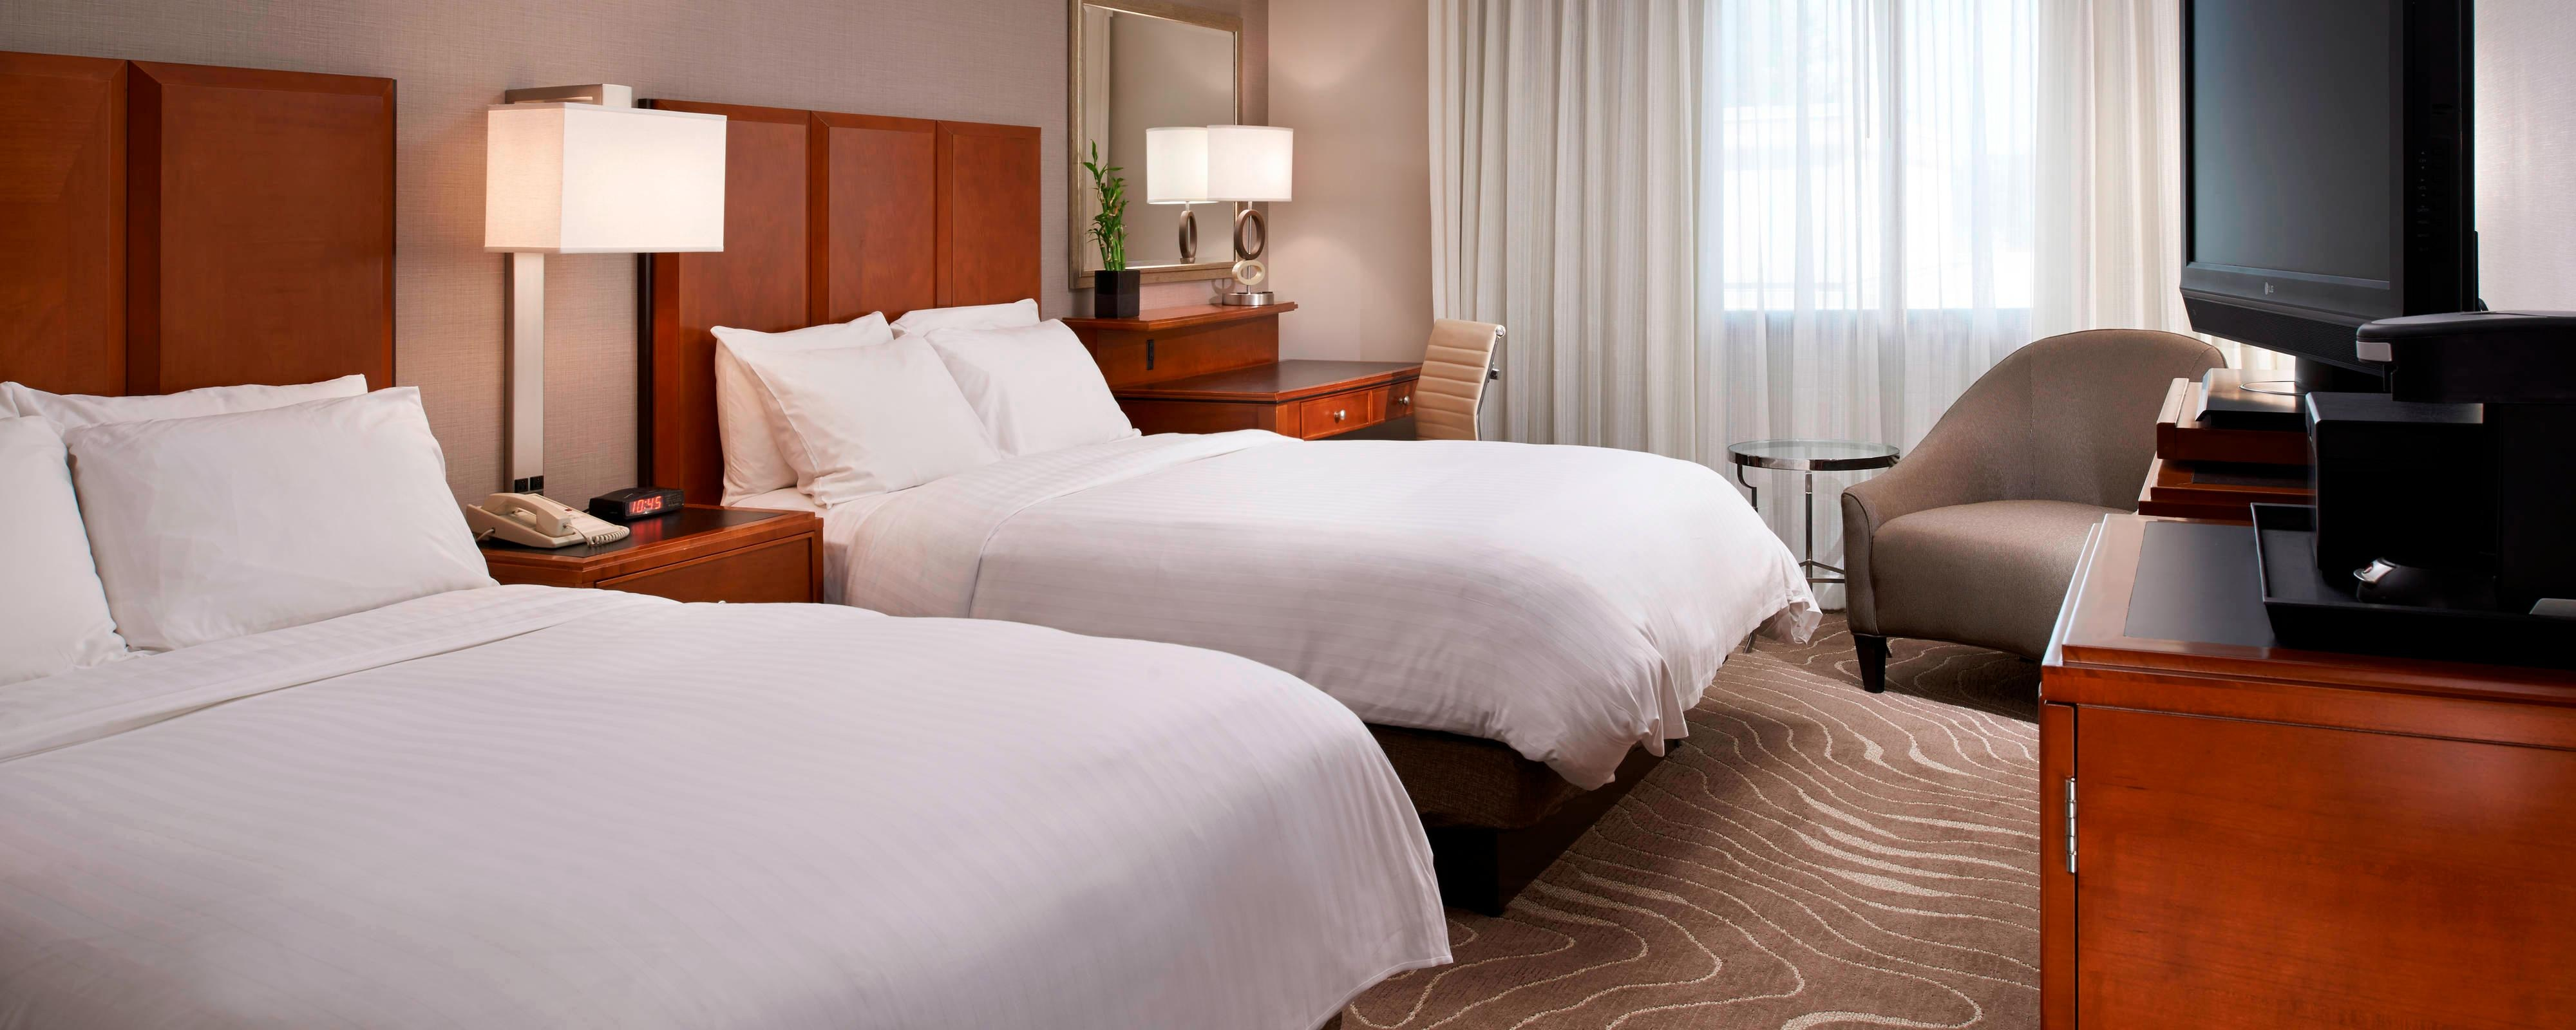 Double Guest Room at the Detroit Metro Airport Marriott